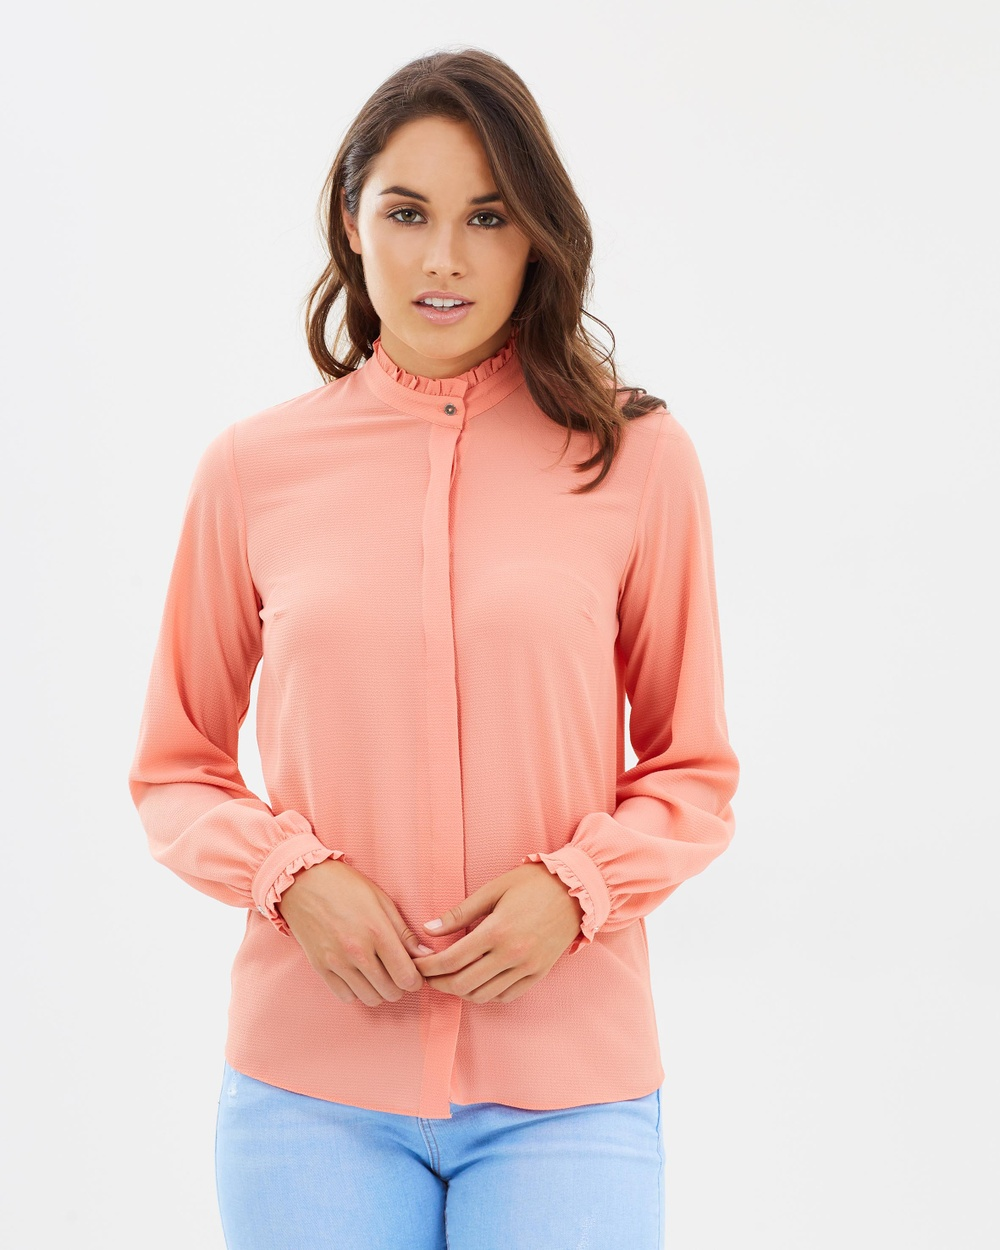 Dorothy Perkins Pie Crust Shirt Tops Coral Pie Crust Shirt